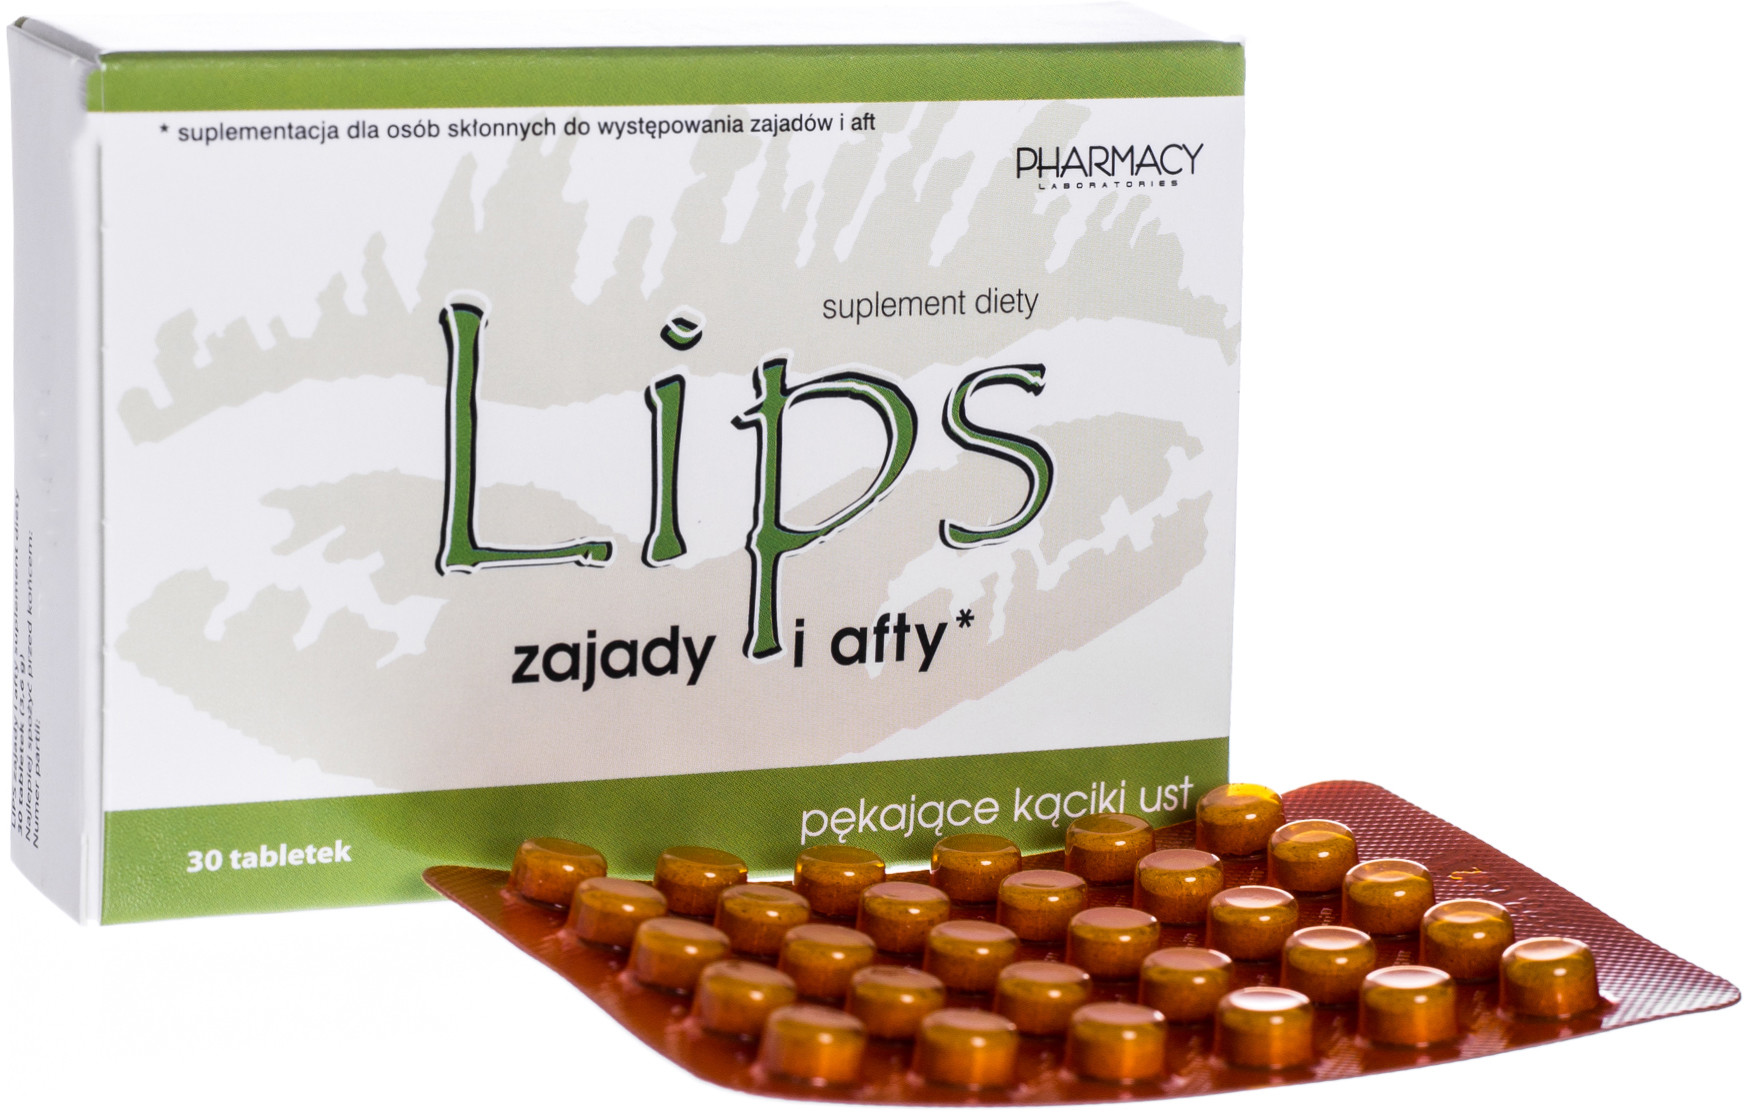 PHARMACY LAB Lips na zajady i afty x 30 tabl